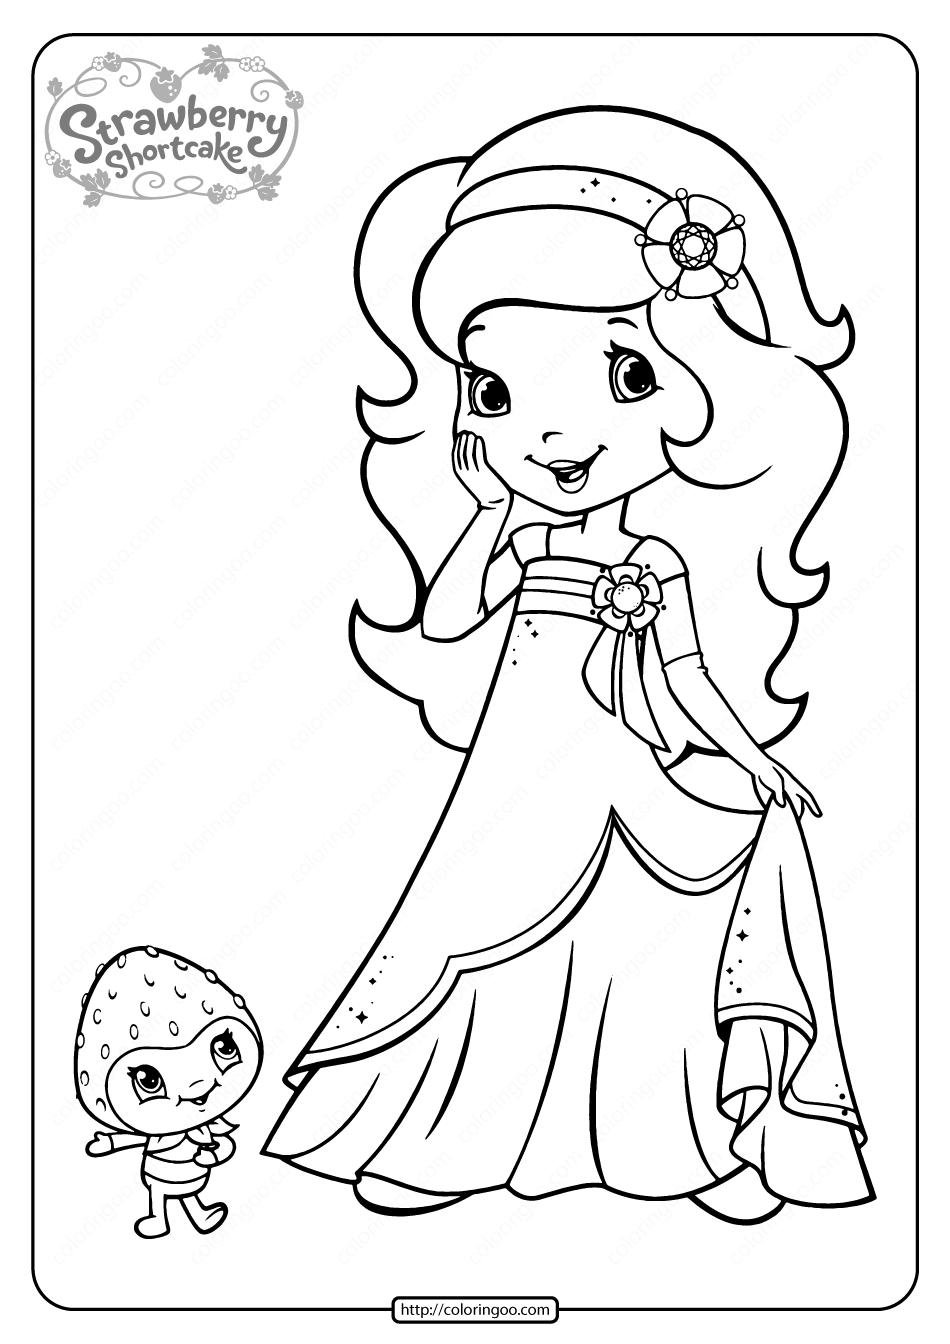 Free Printable Orange Blossom Coloring Page